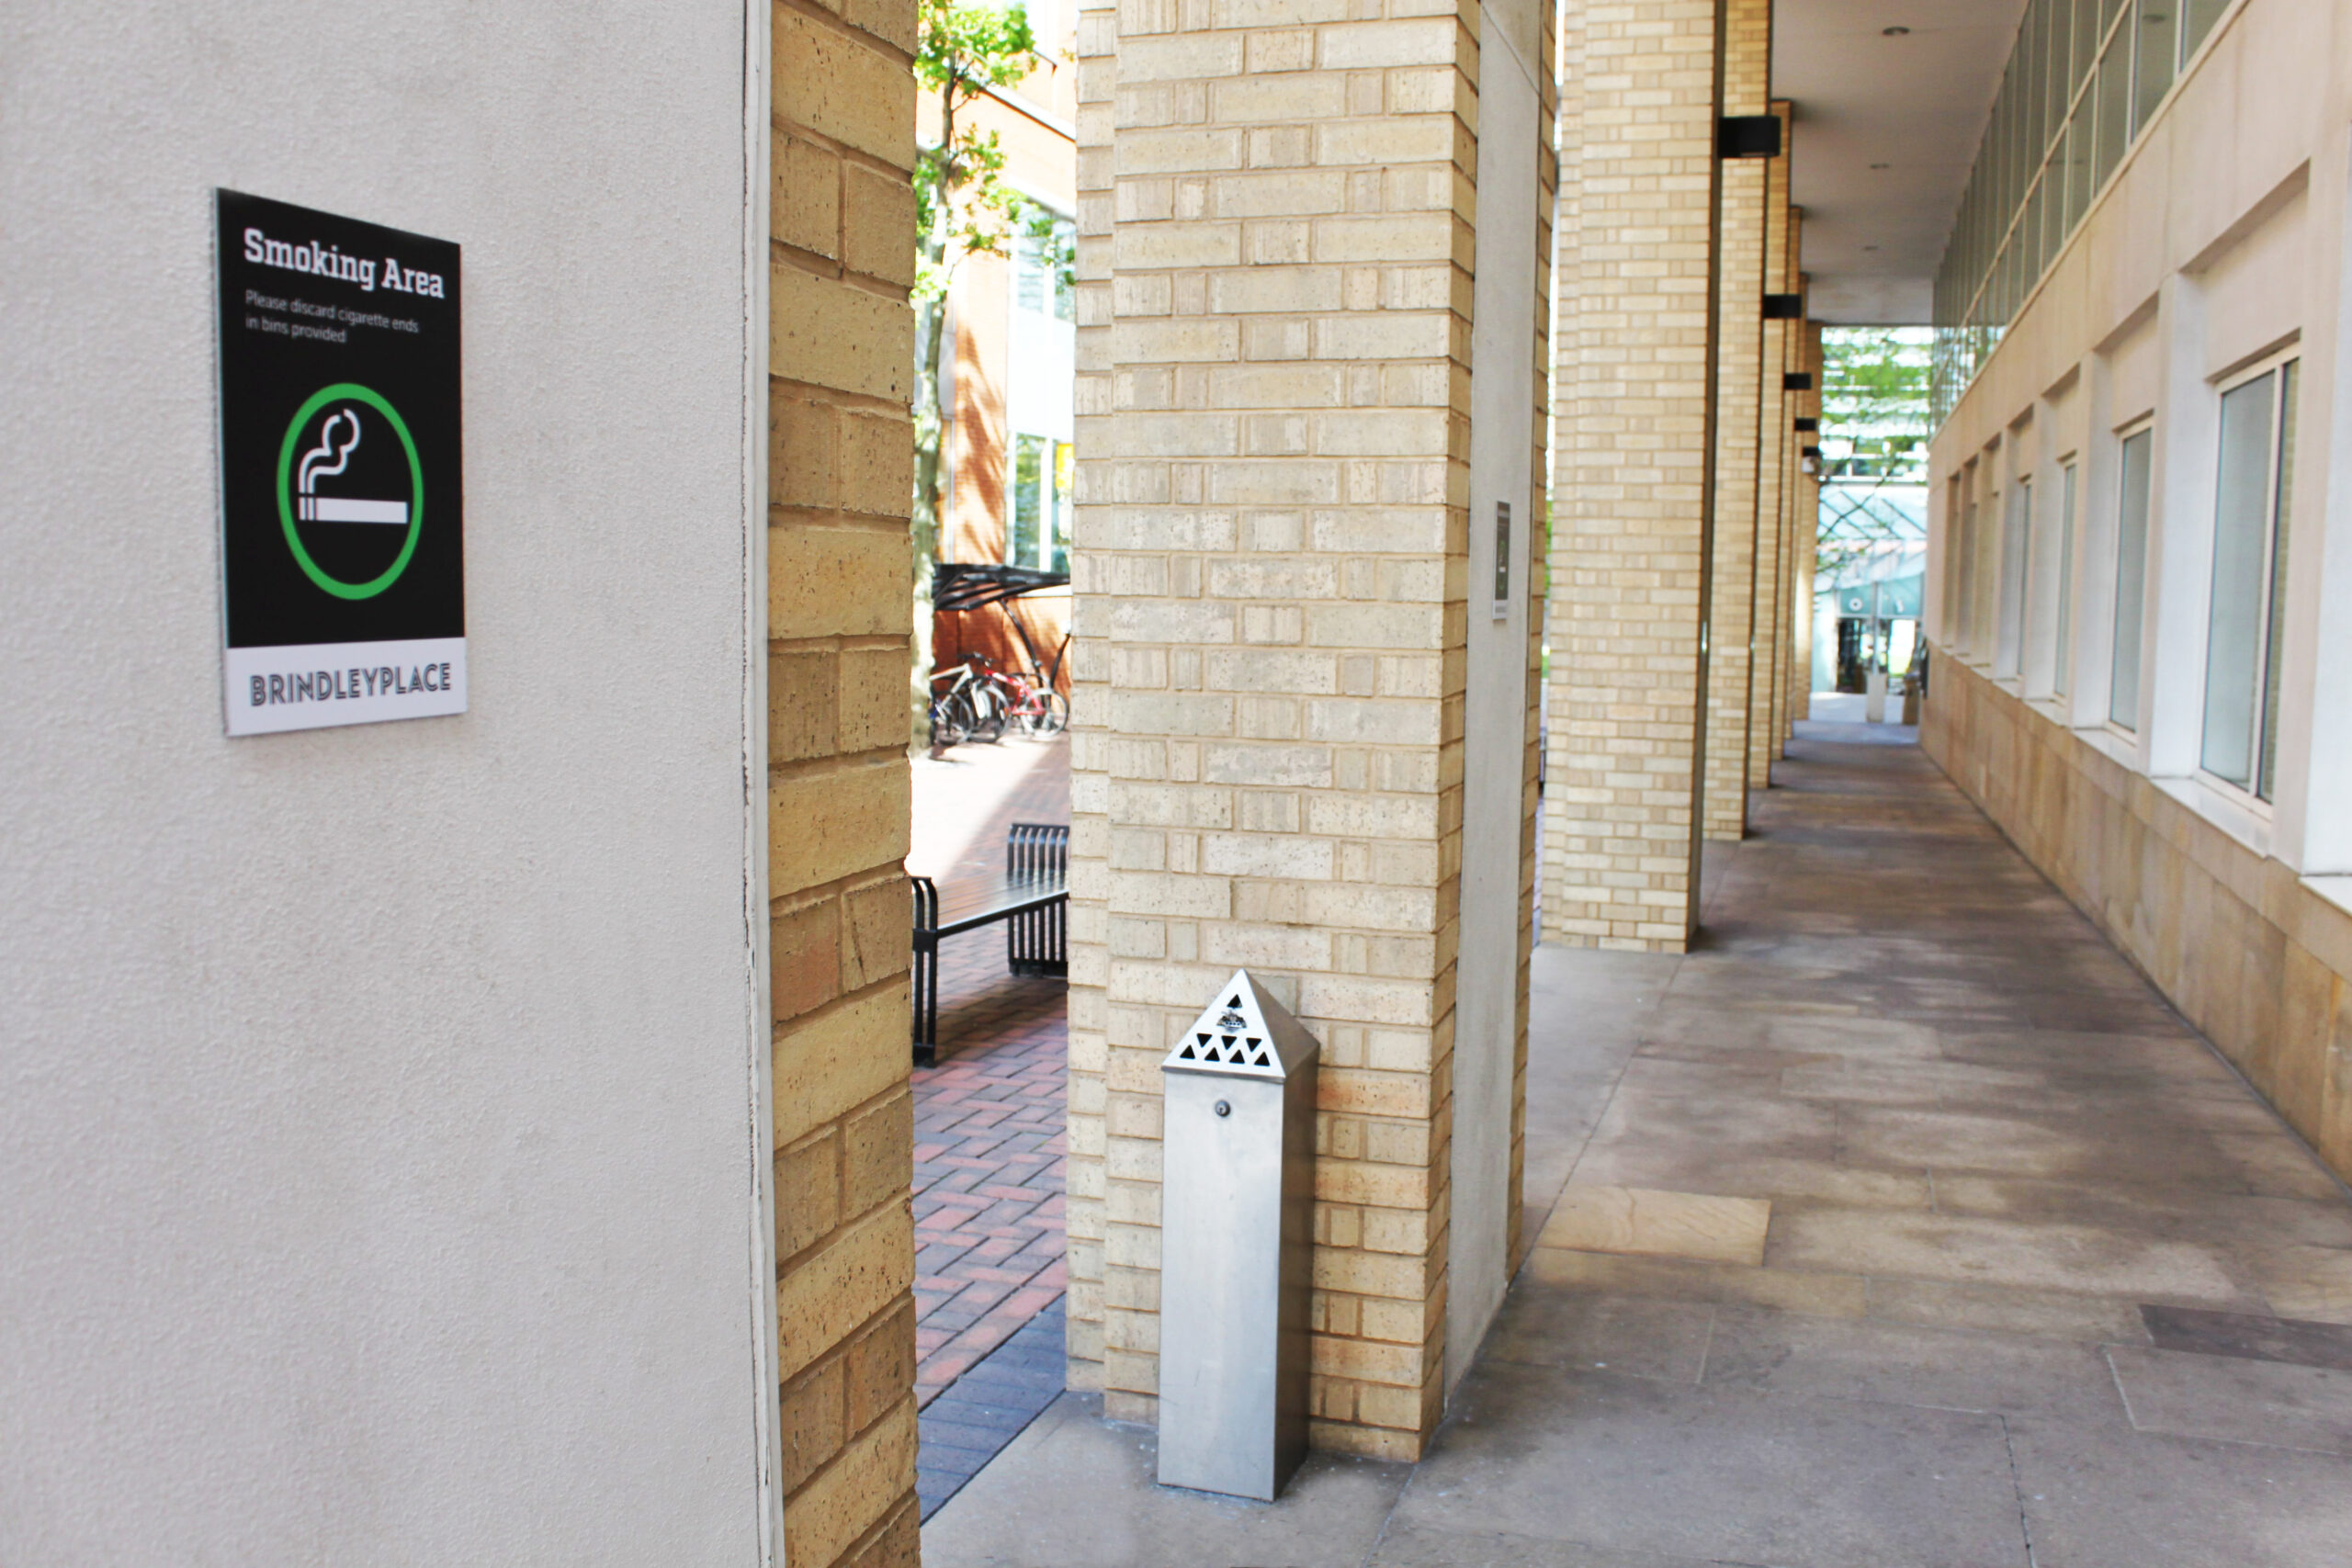 Brindley-Place-Smokeing-Area-signage-Concept-Group